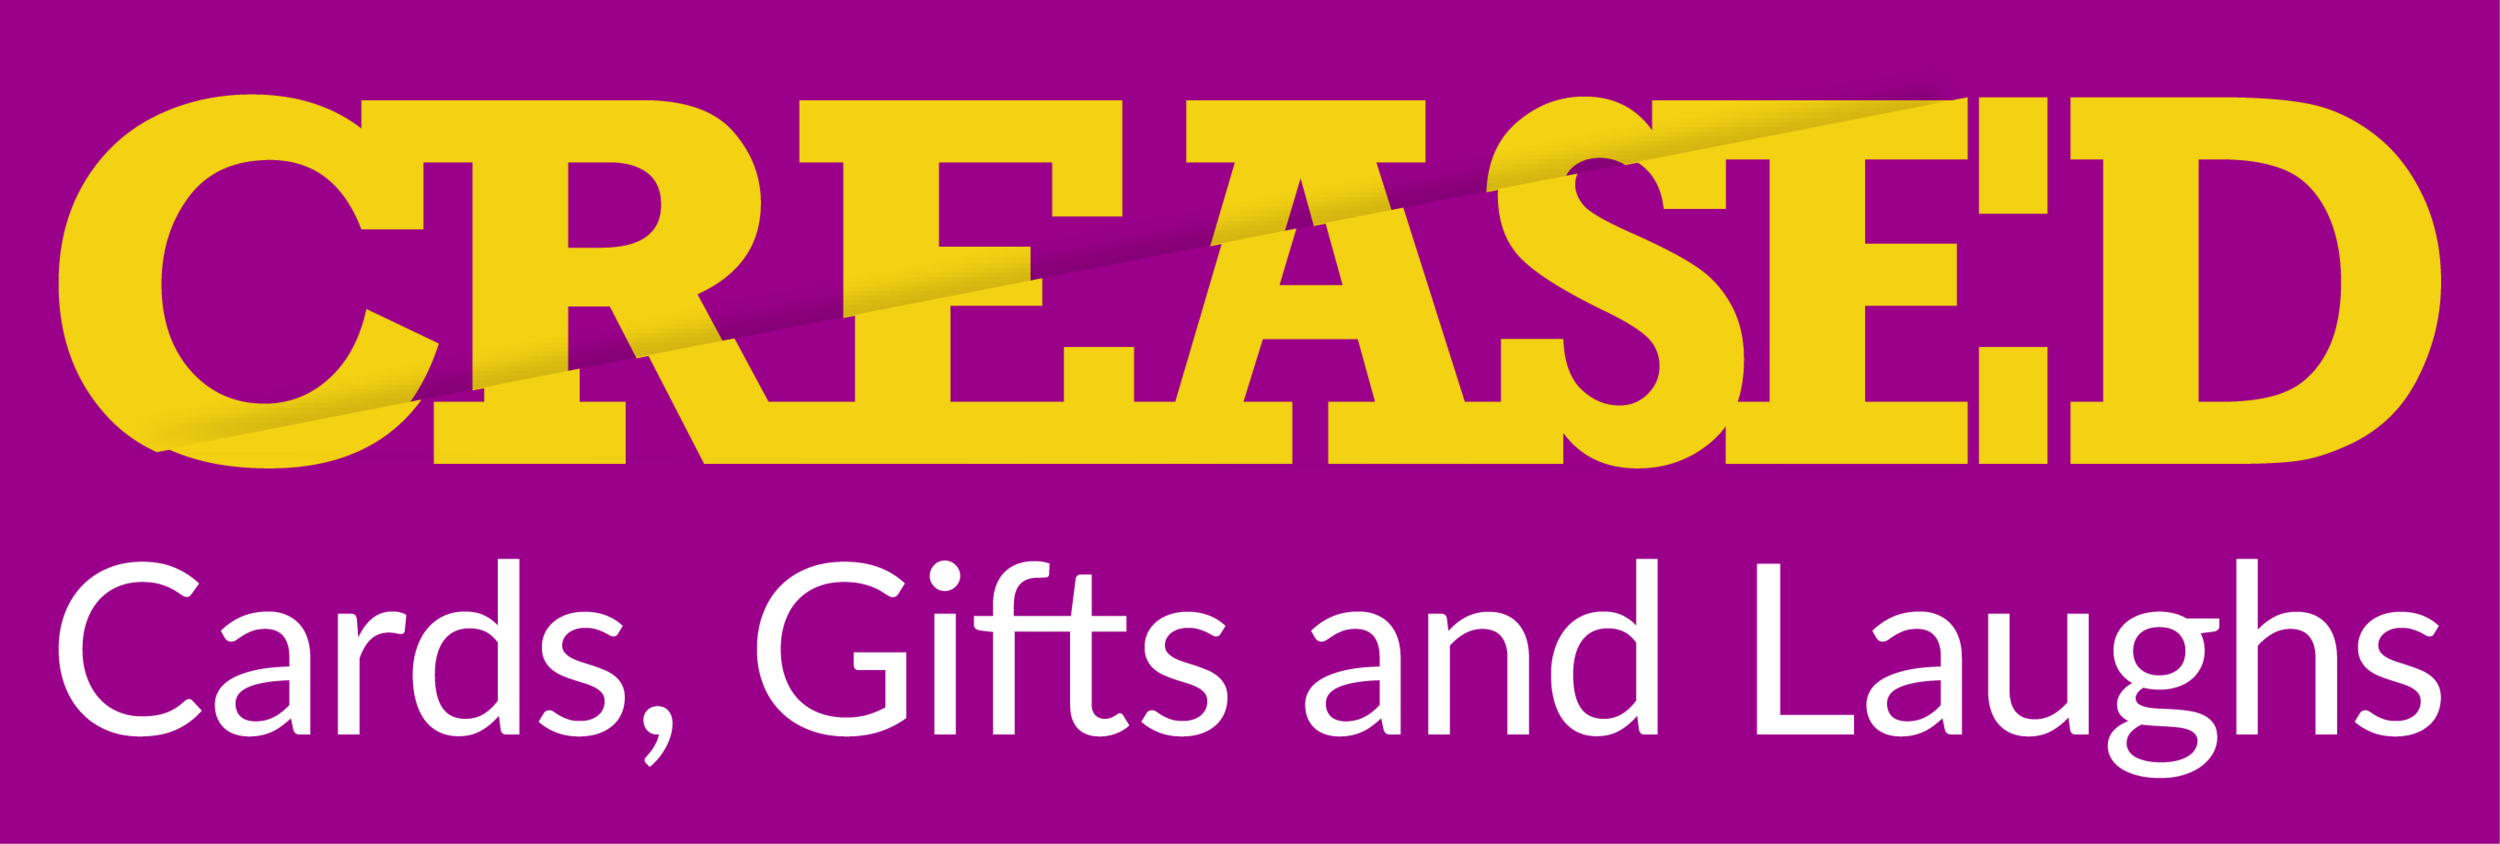 Creased-Cards-Logo_Strap-Laughs-Purple-Background-Tighter.png